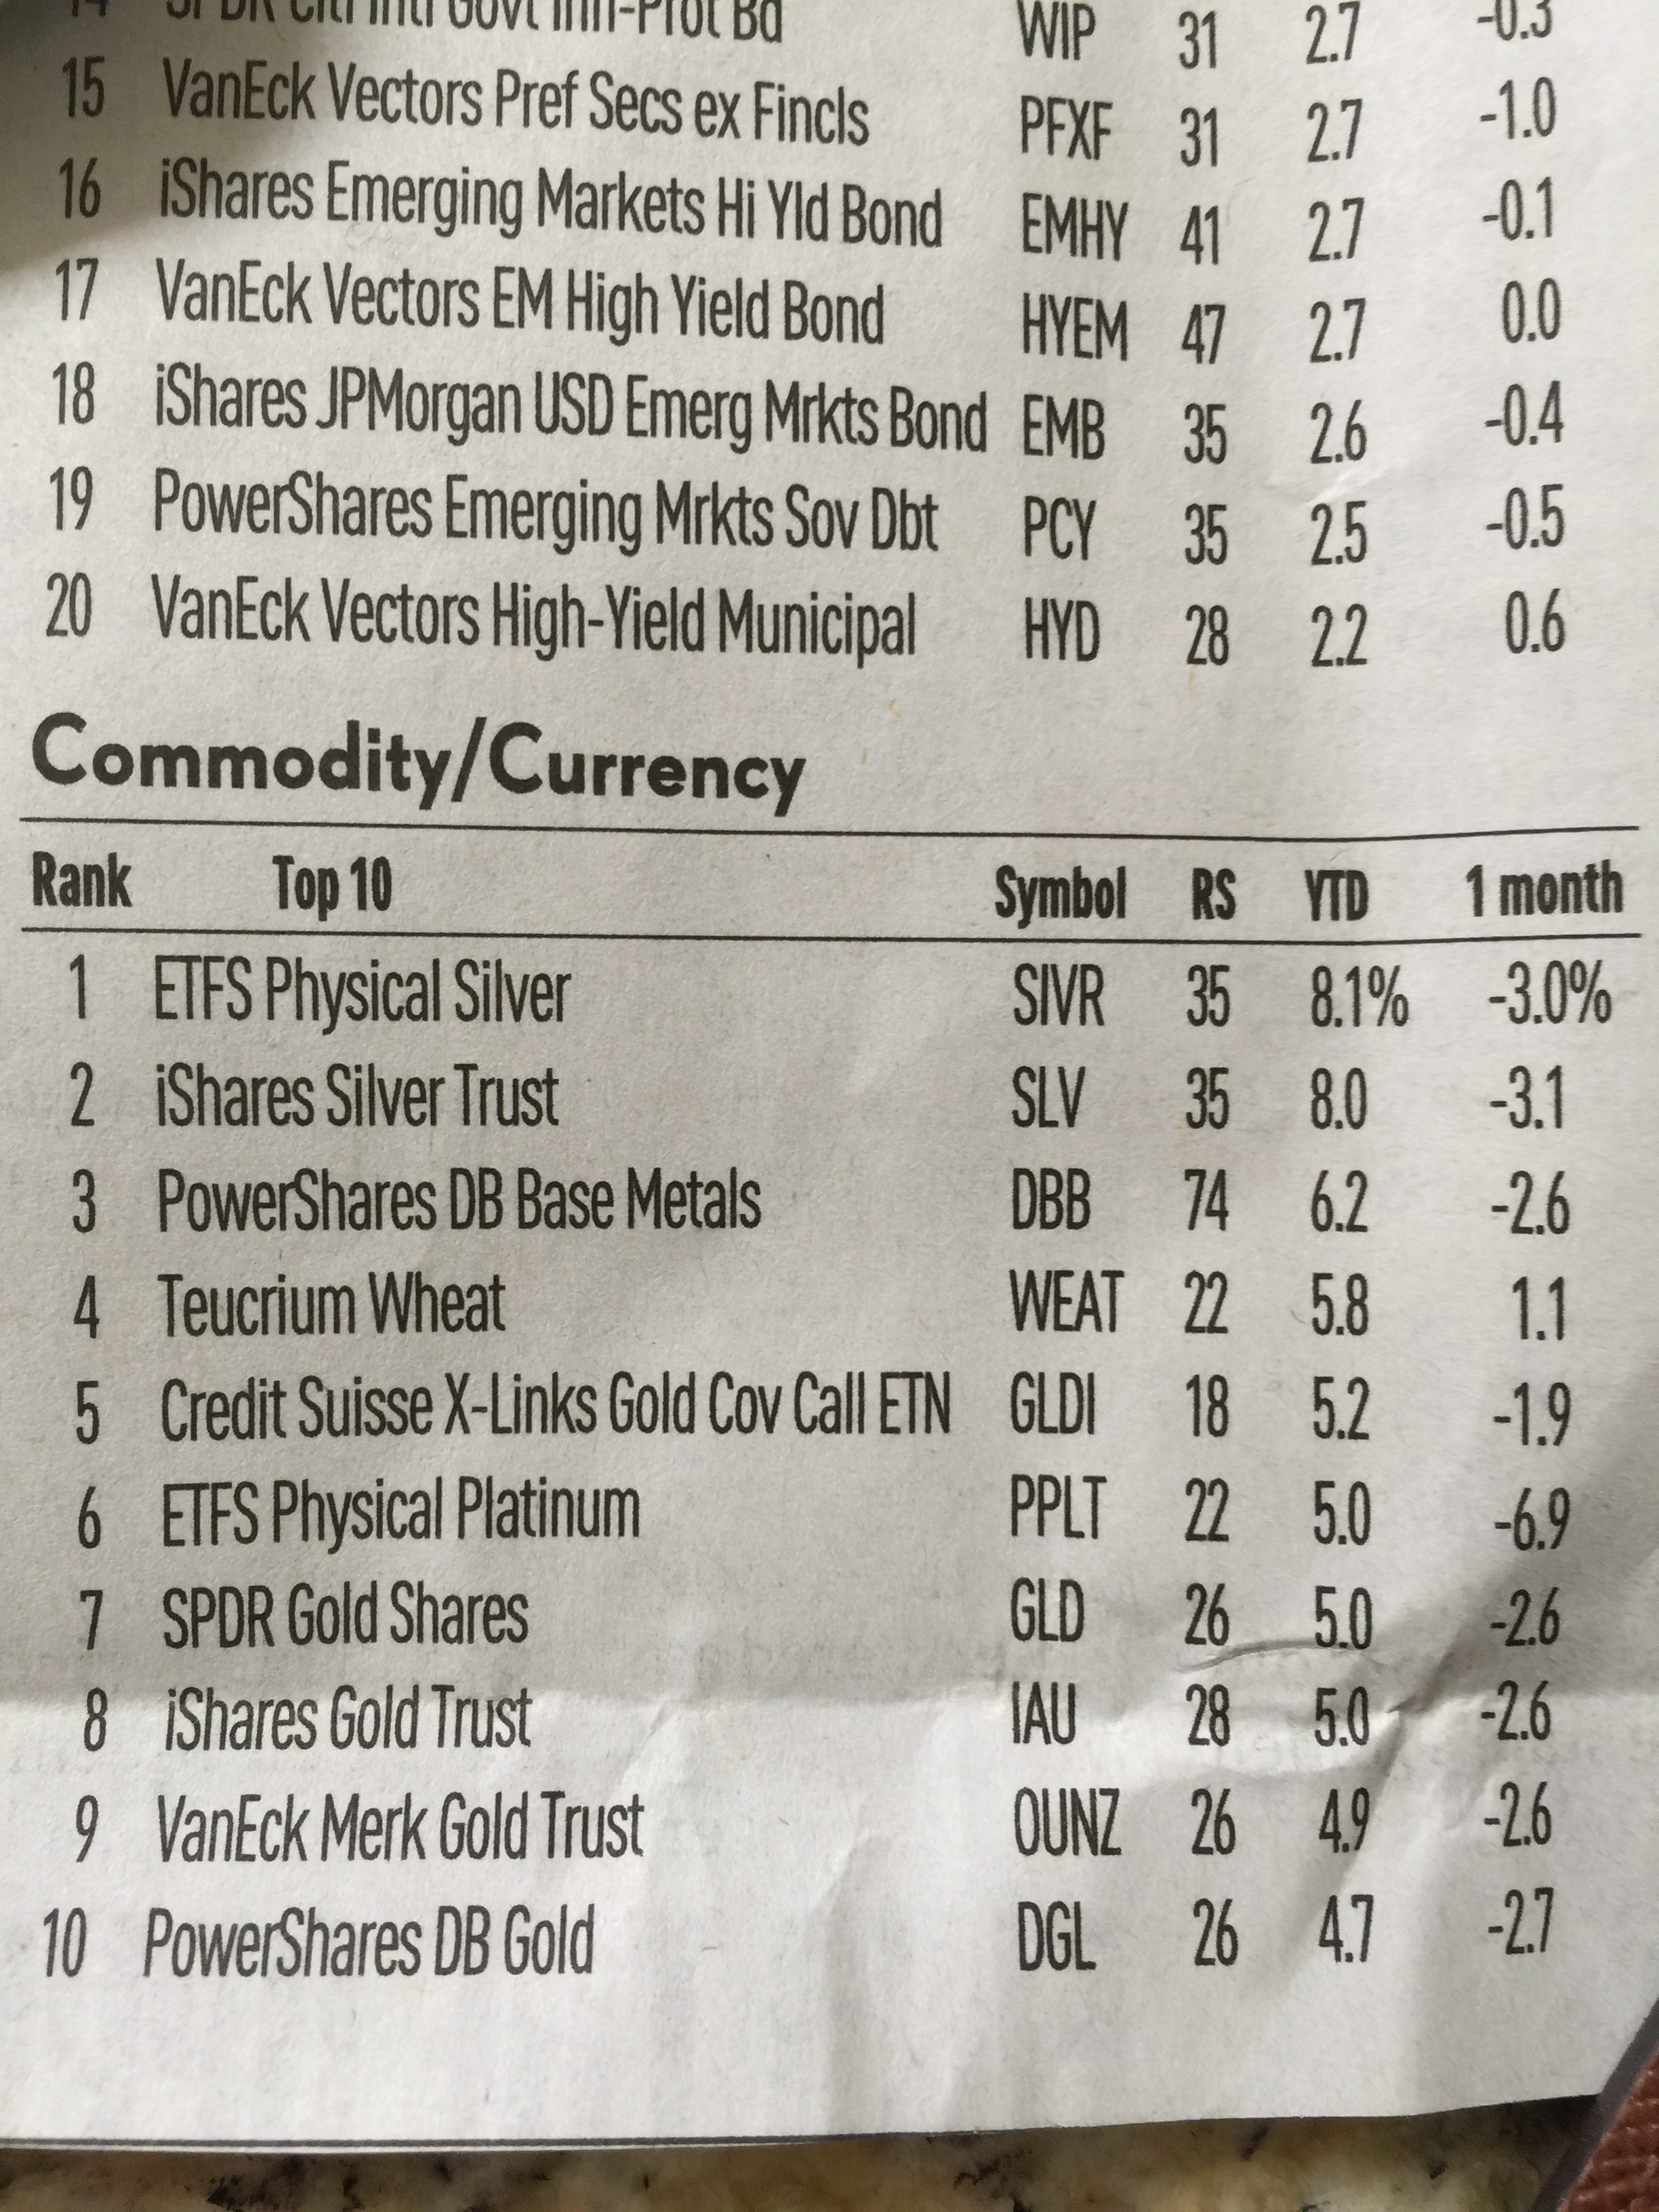 ETF Commodity/Currency chart